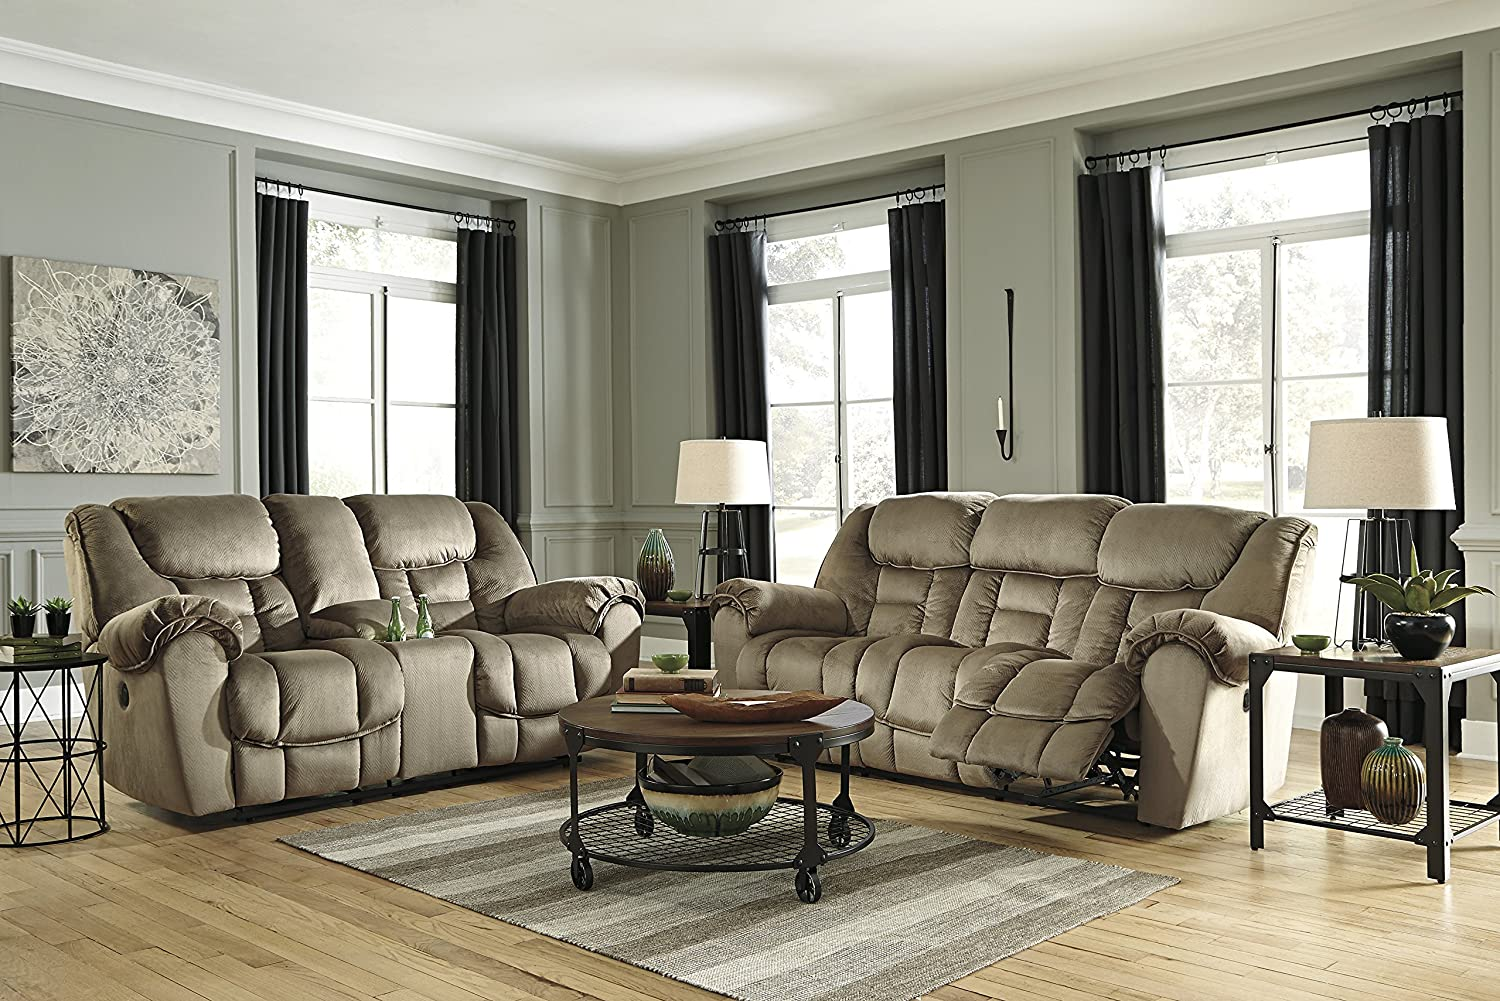 Jodoca Contemporary Driftwood Microfiber Reclining Power Sofa And Loveseat w/Consol